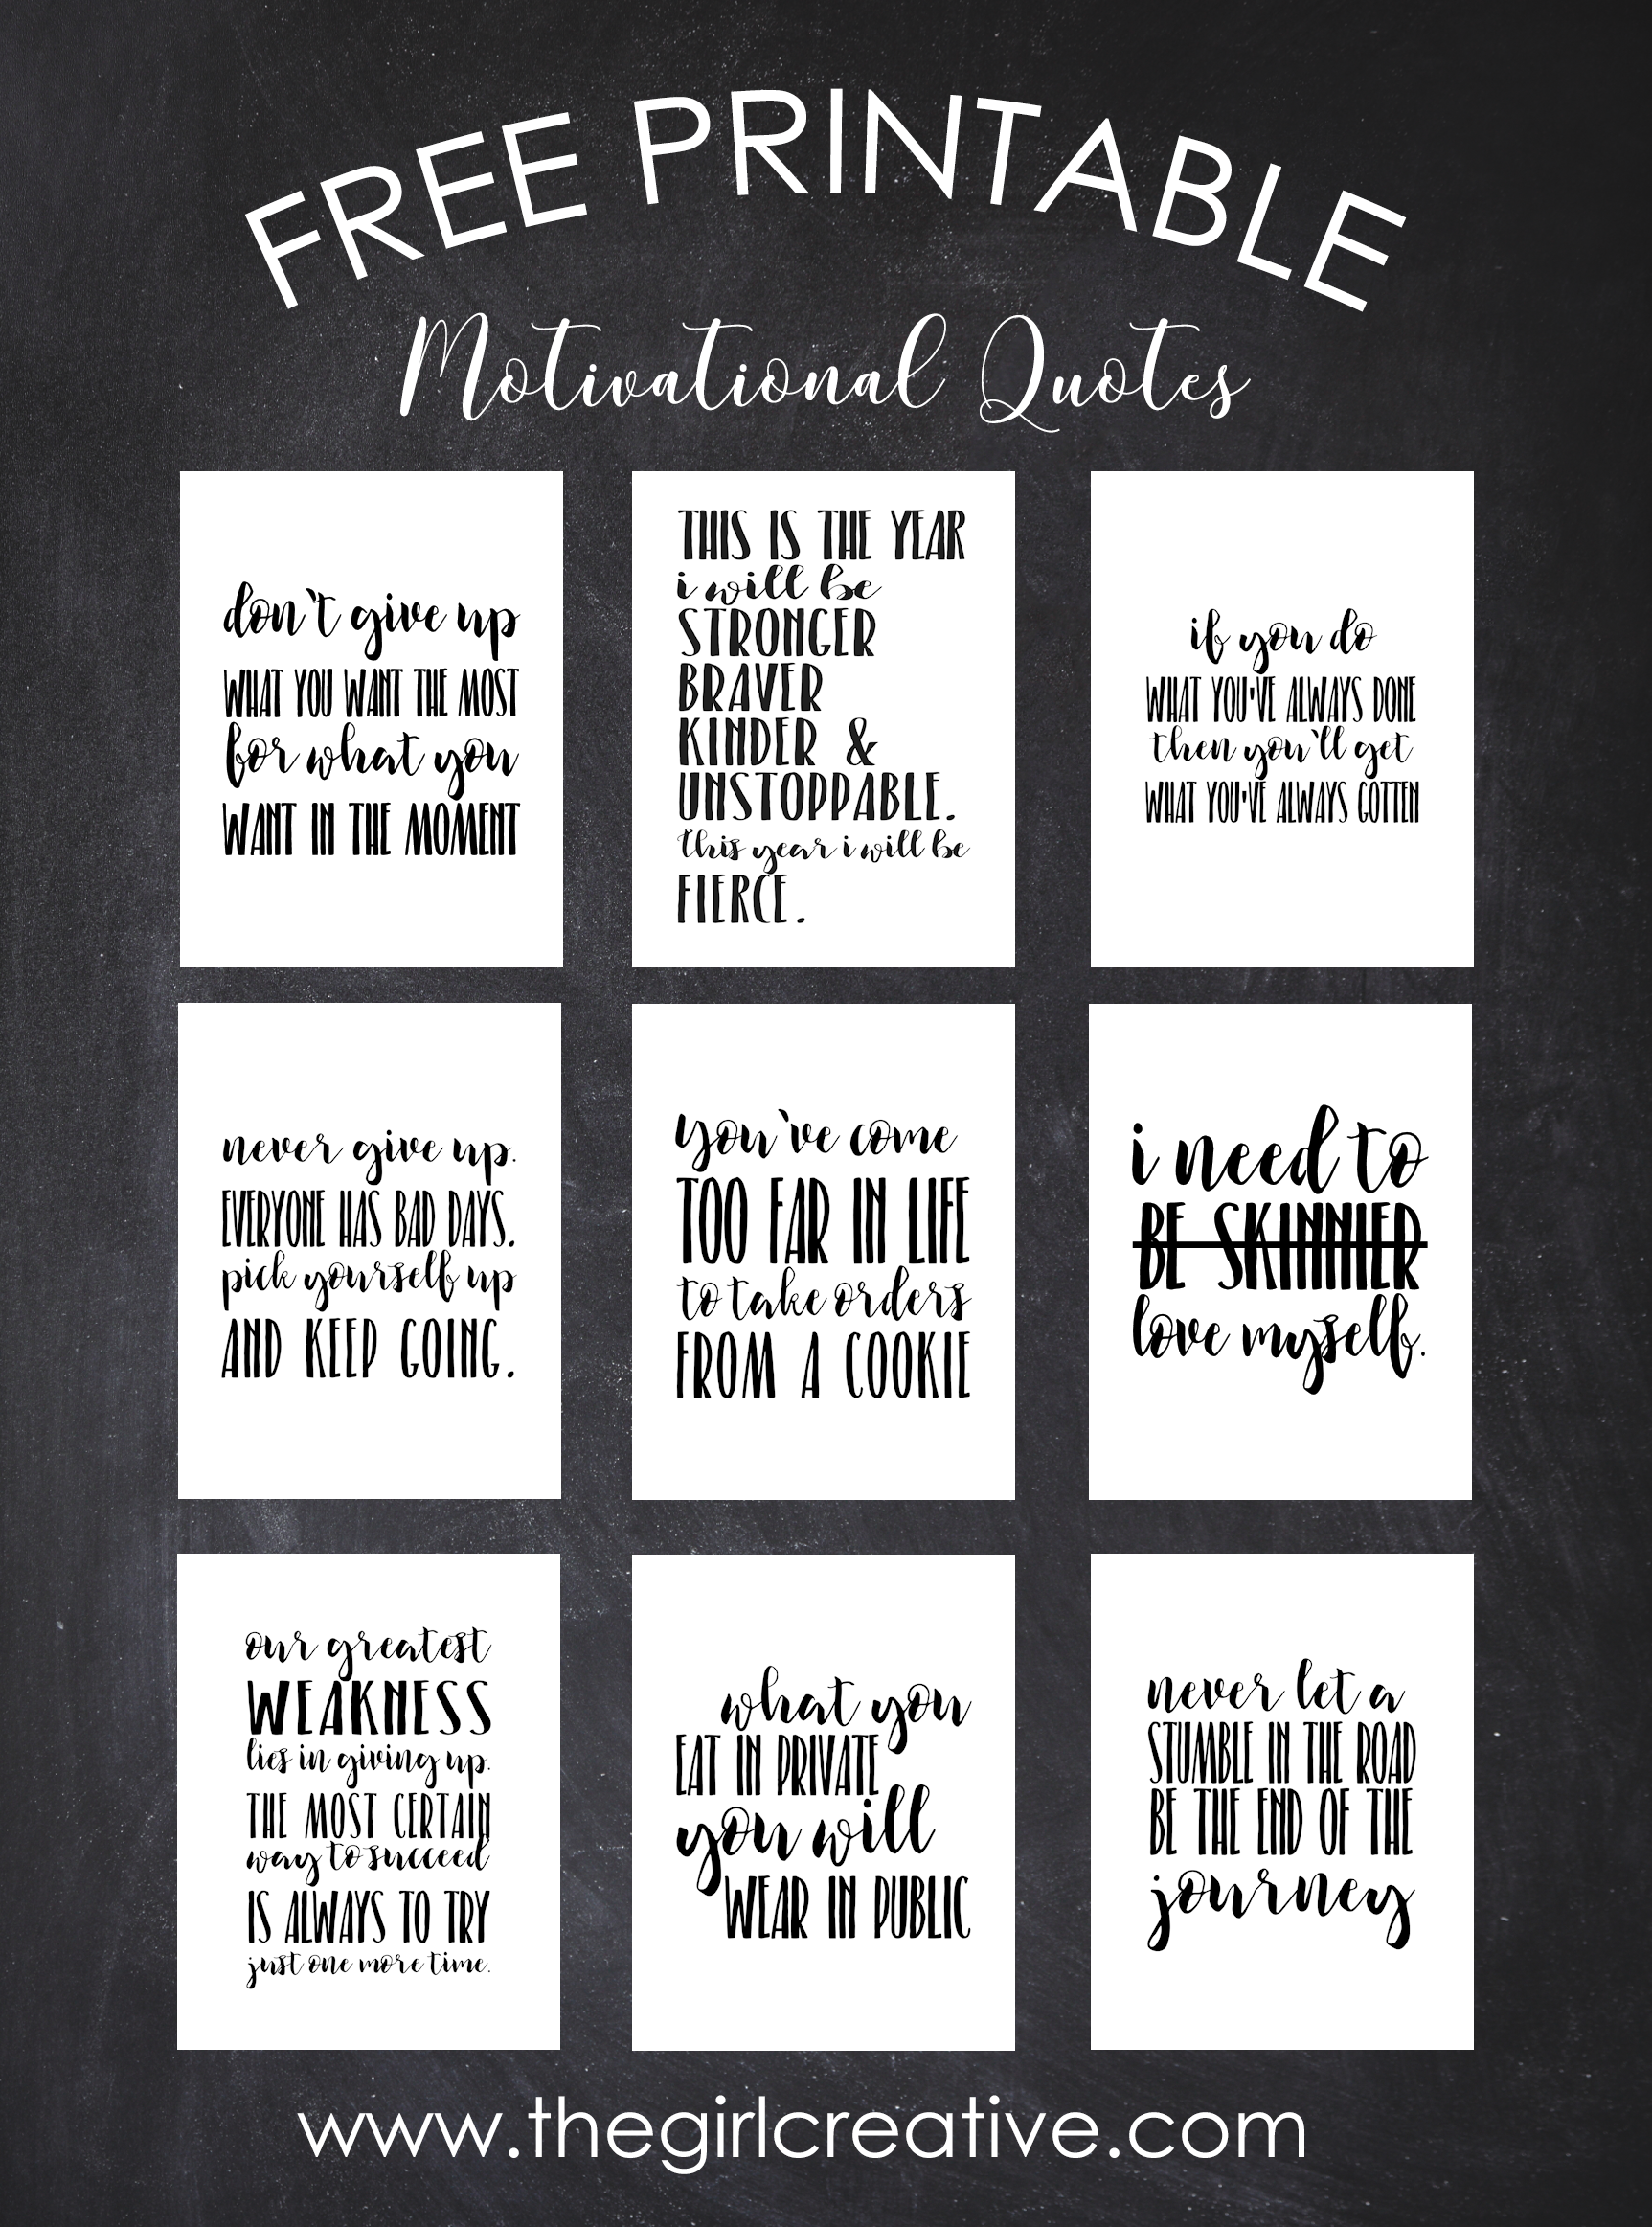 9 FREE Printable Motivational Quotes